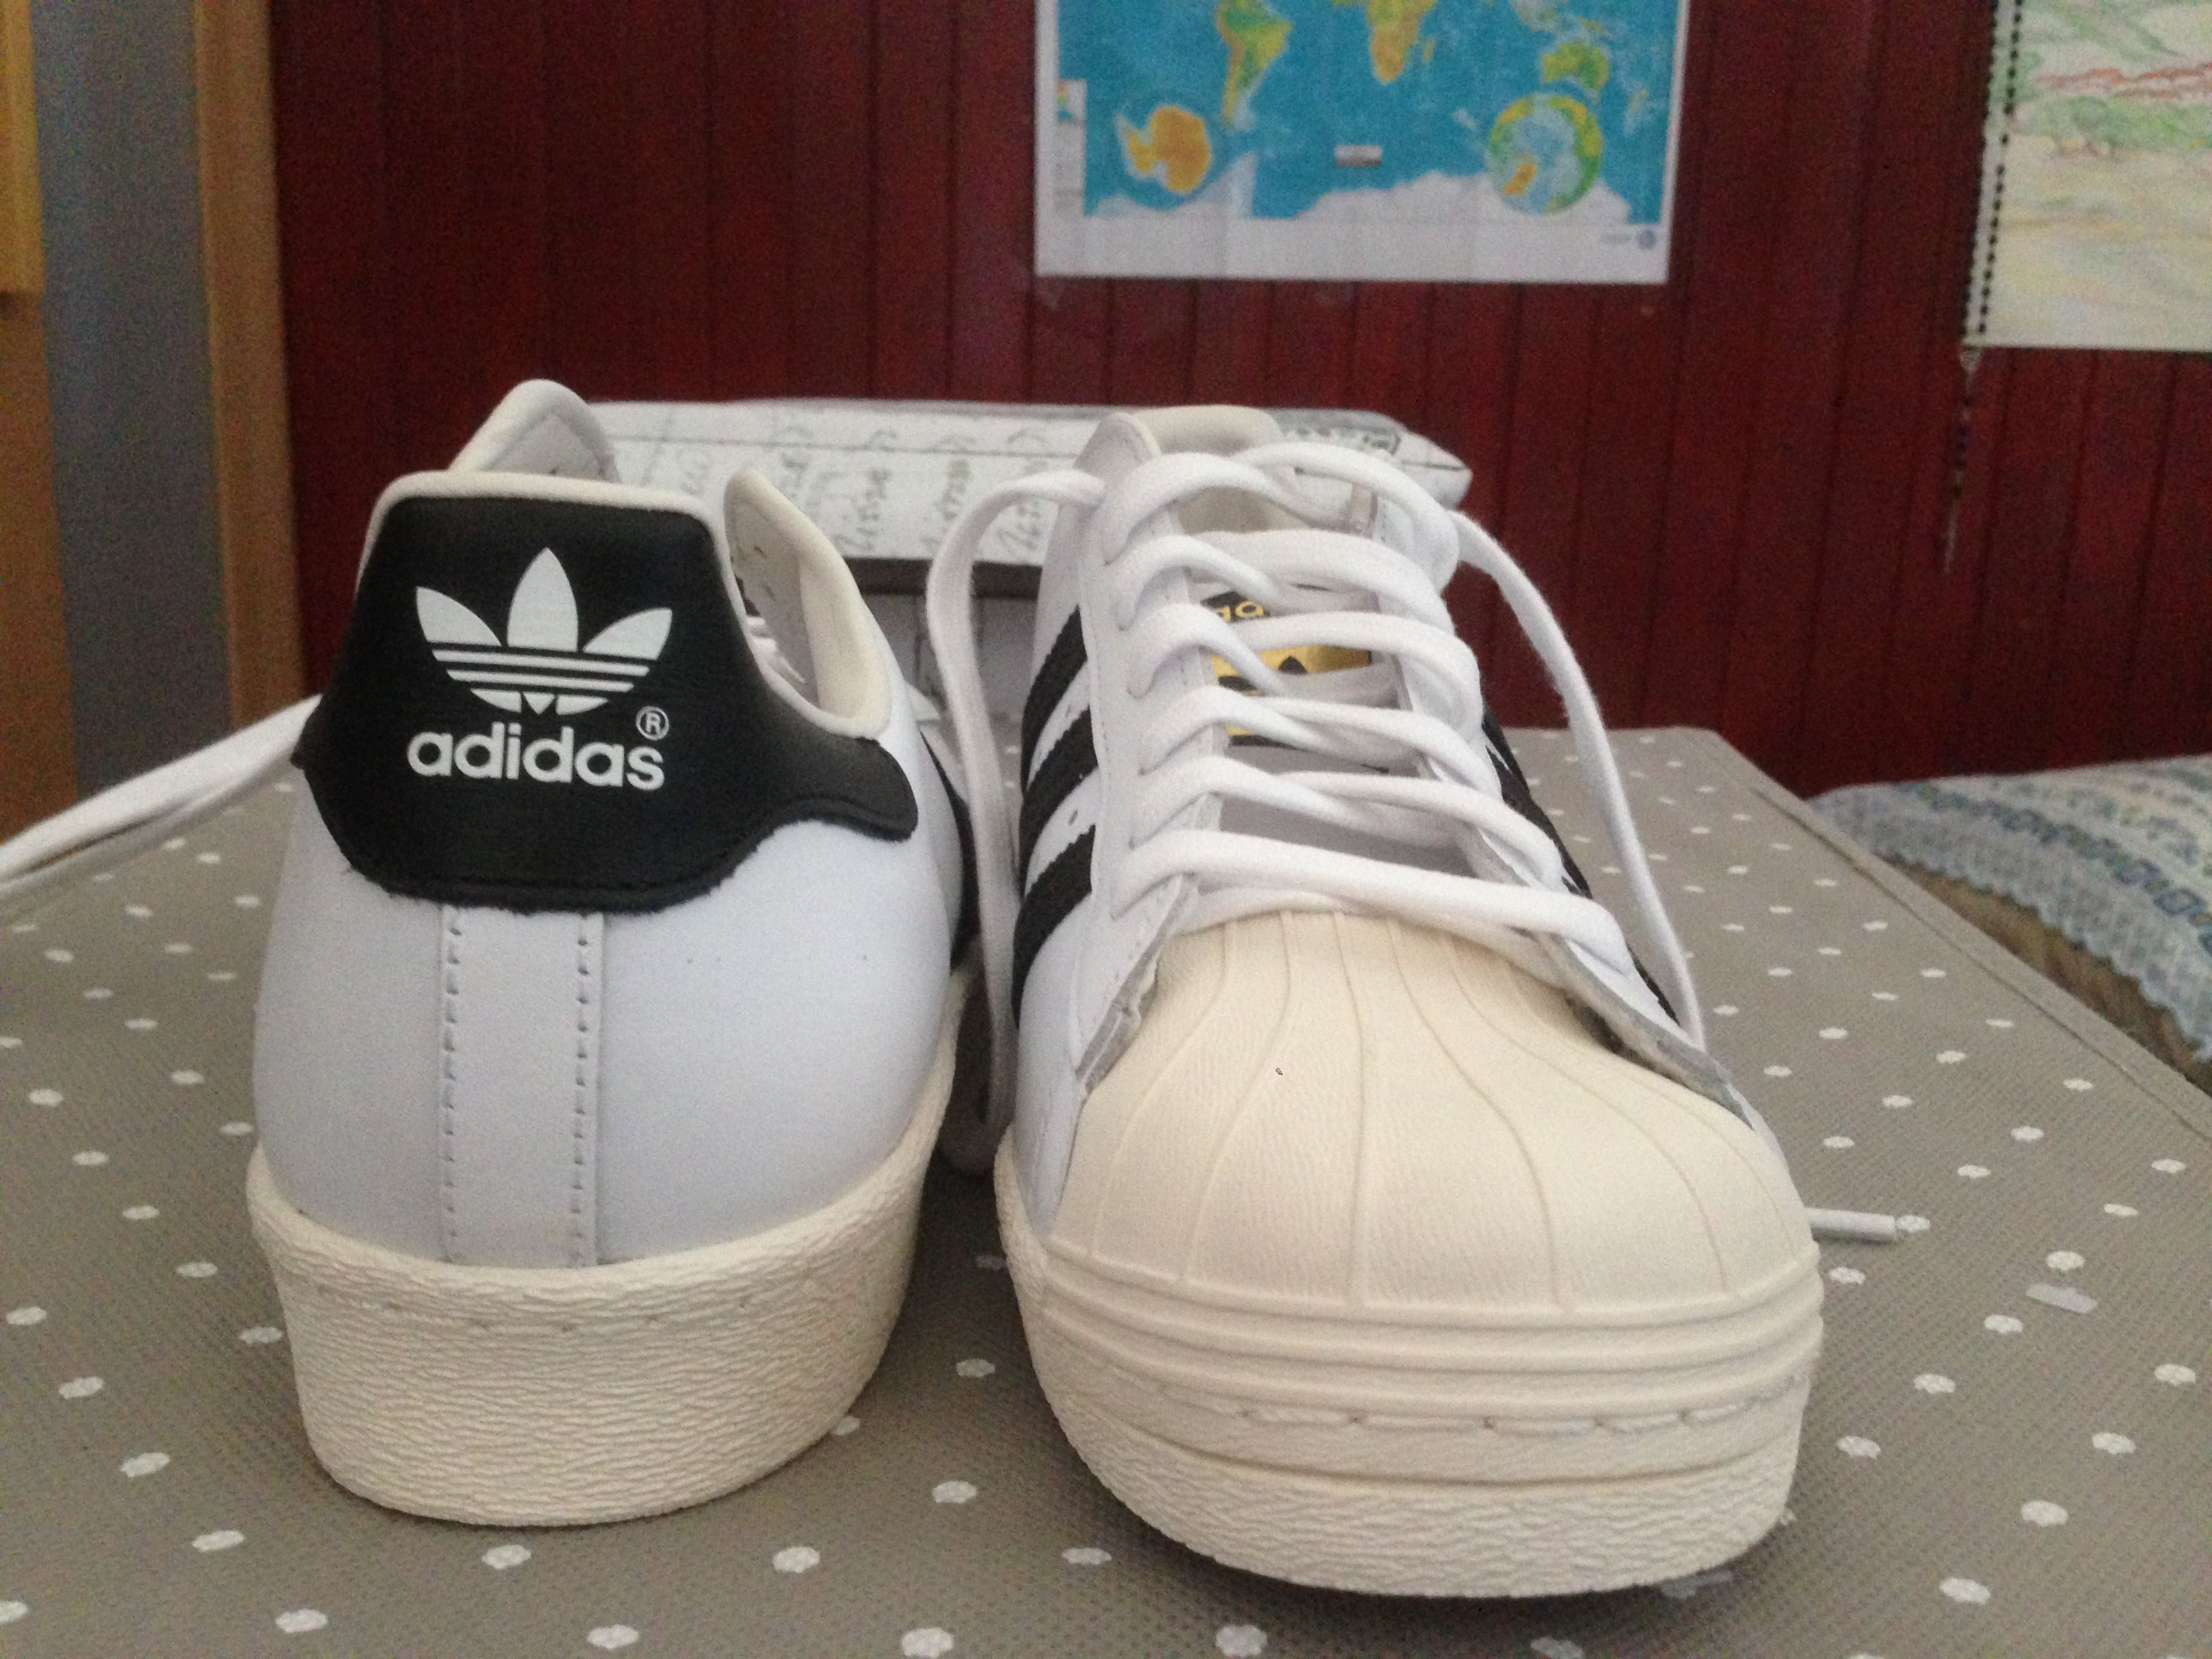 My vintage superstar 80's